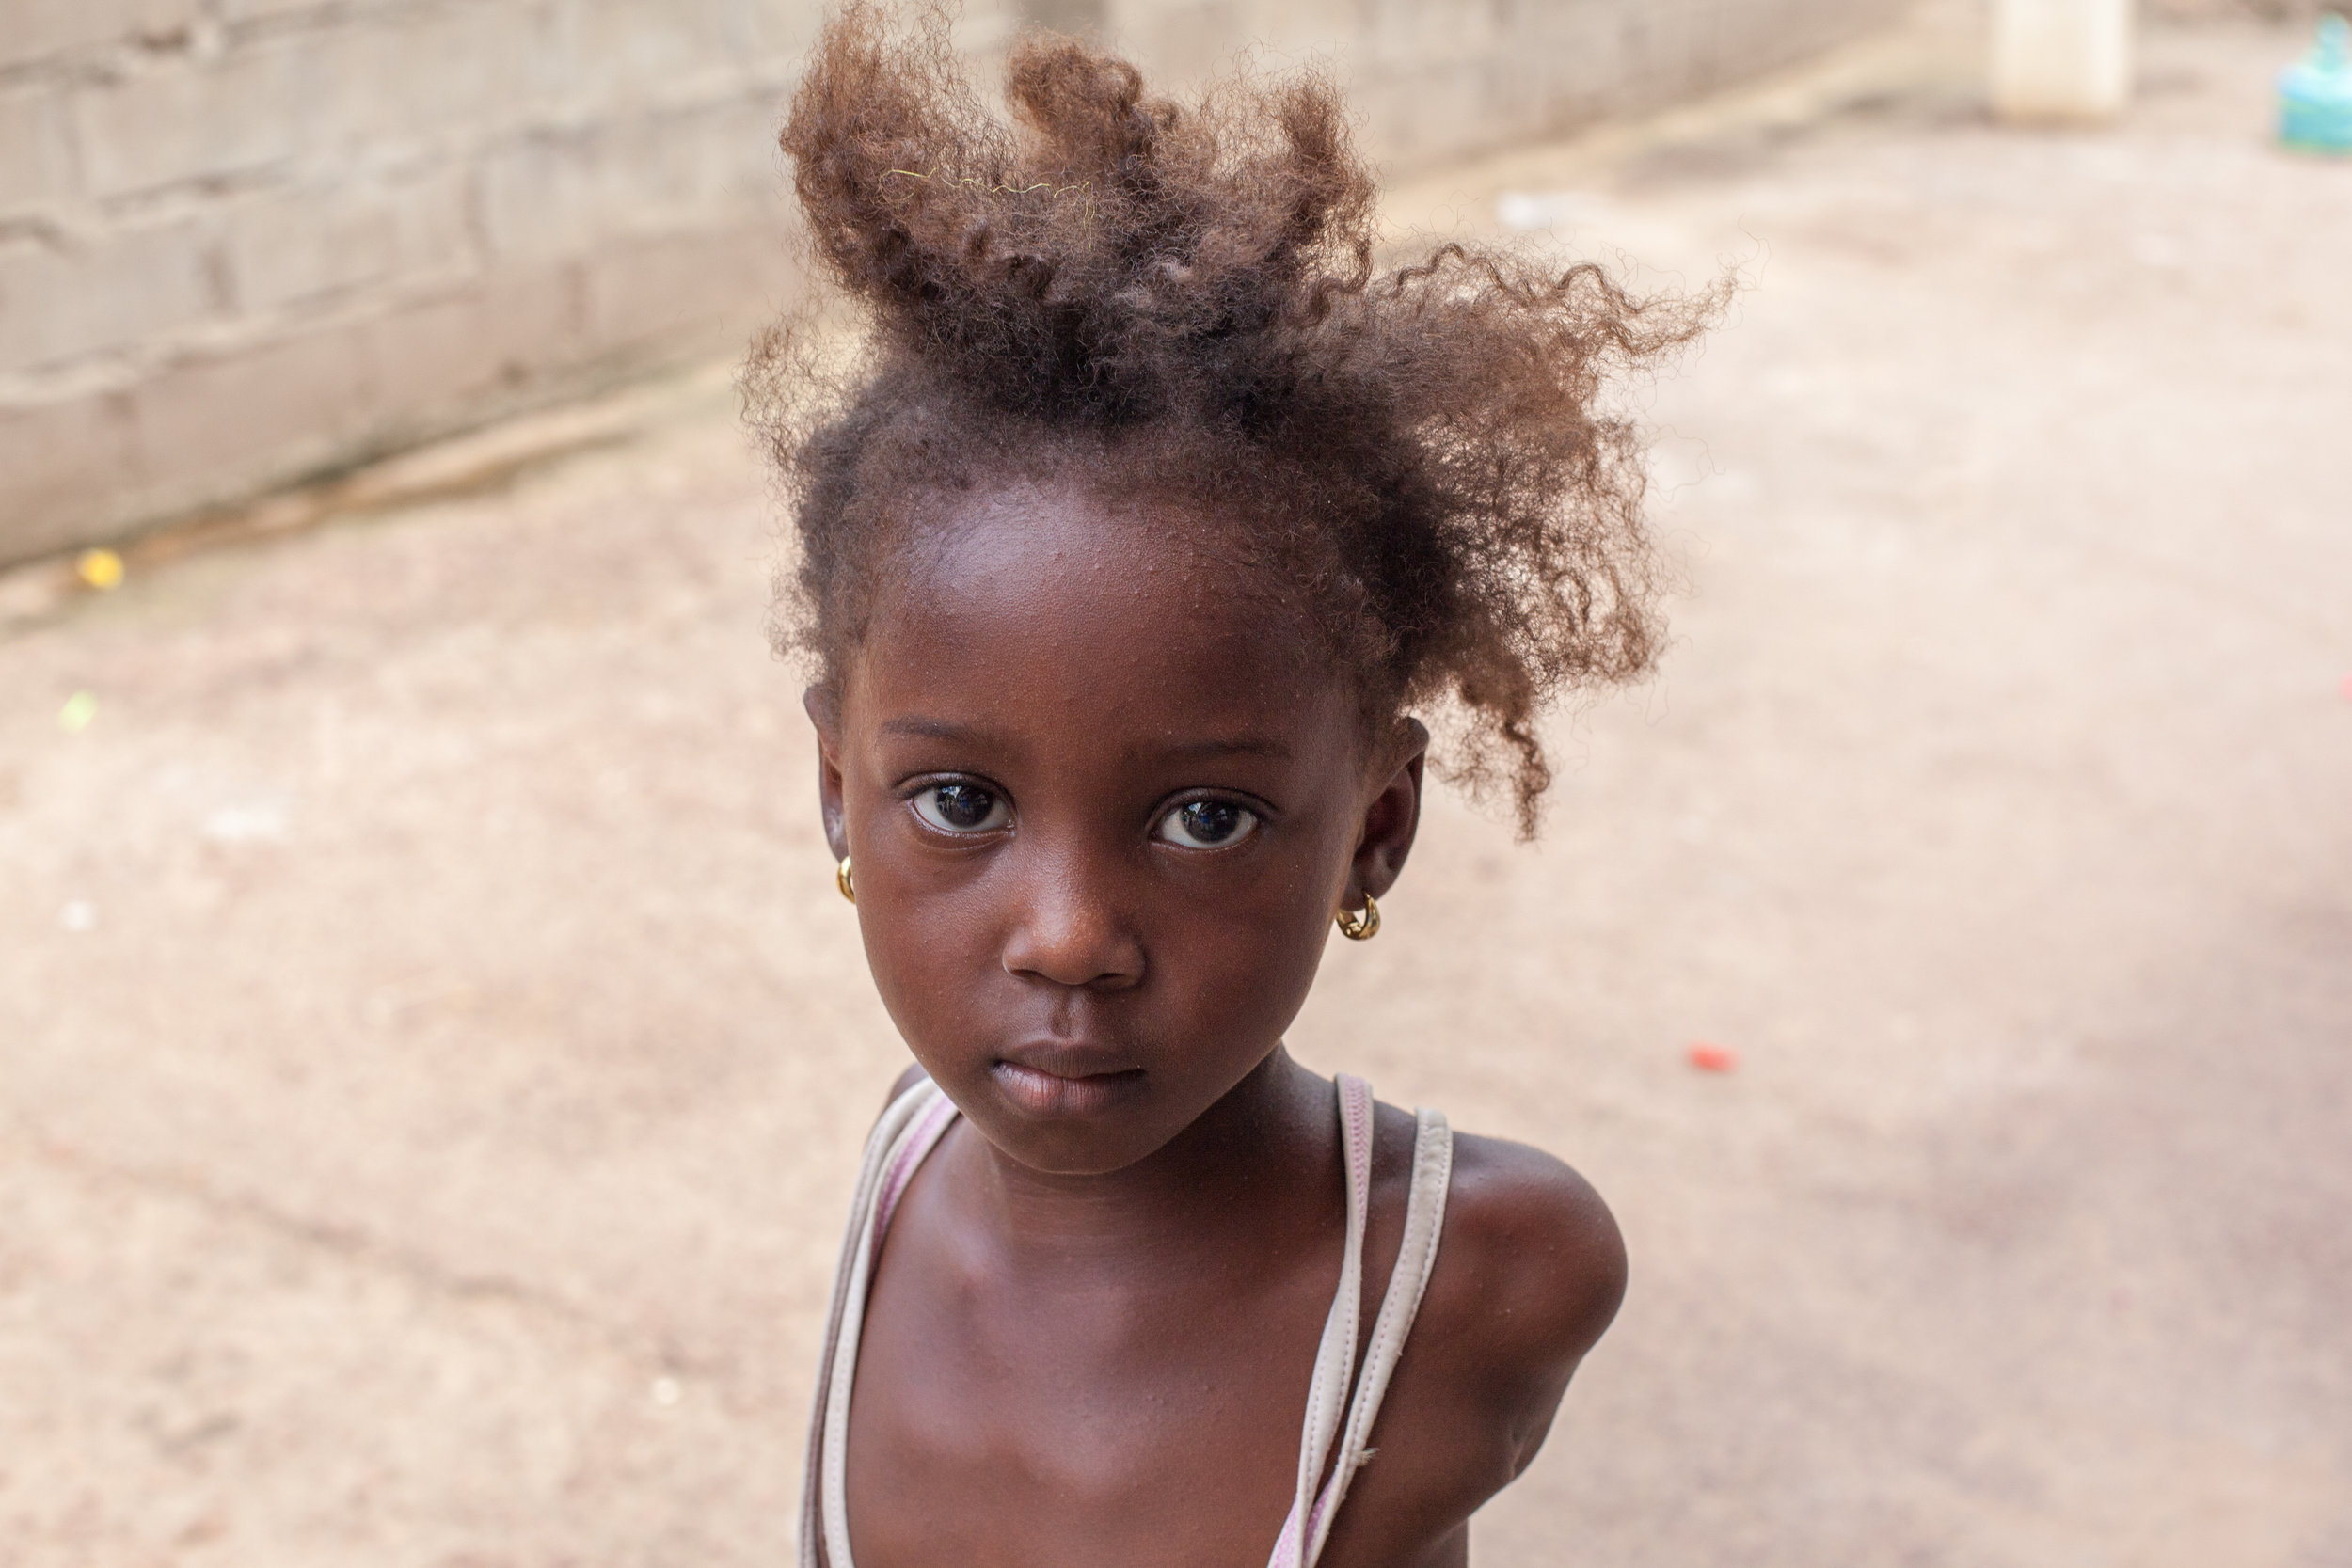 African Child Portrait by Geraint Rowland, The Gambia